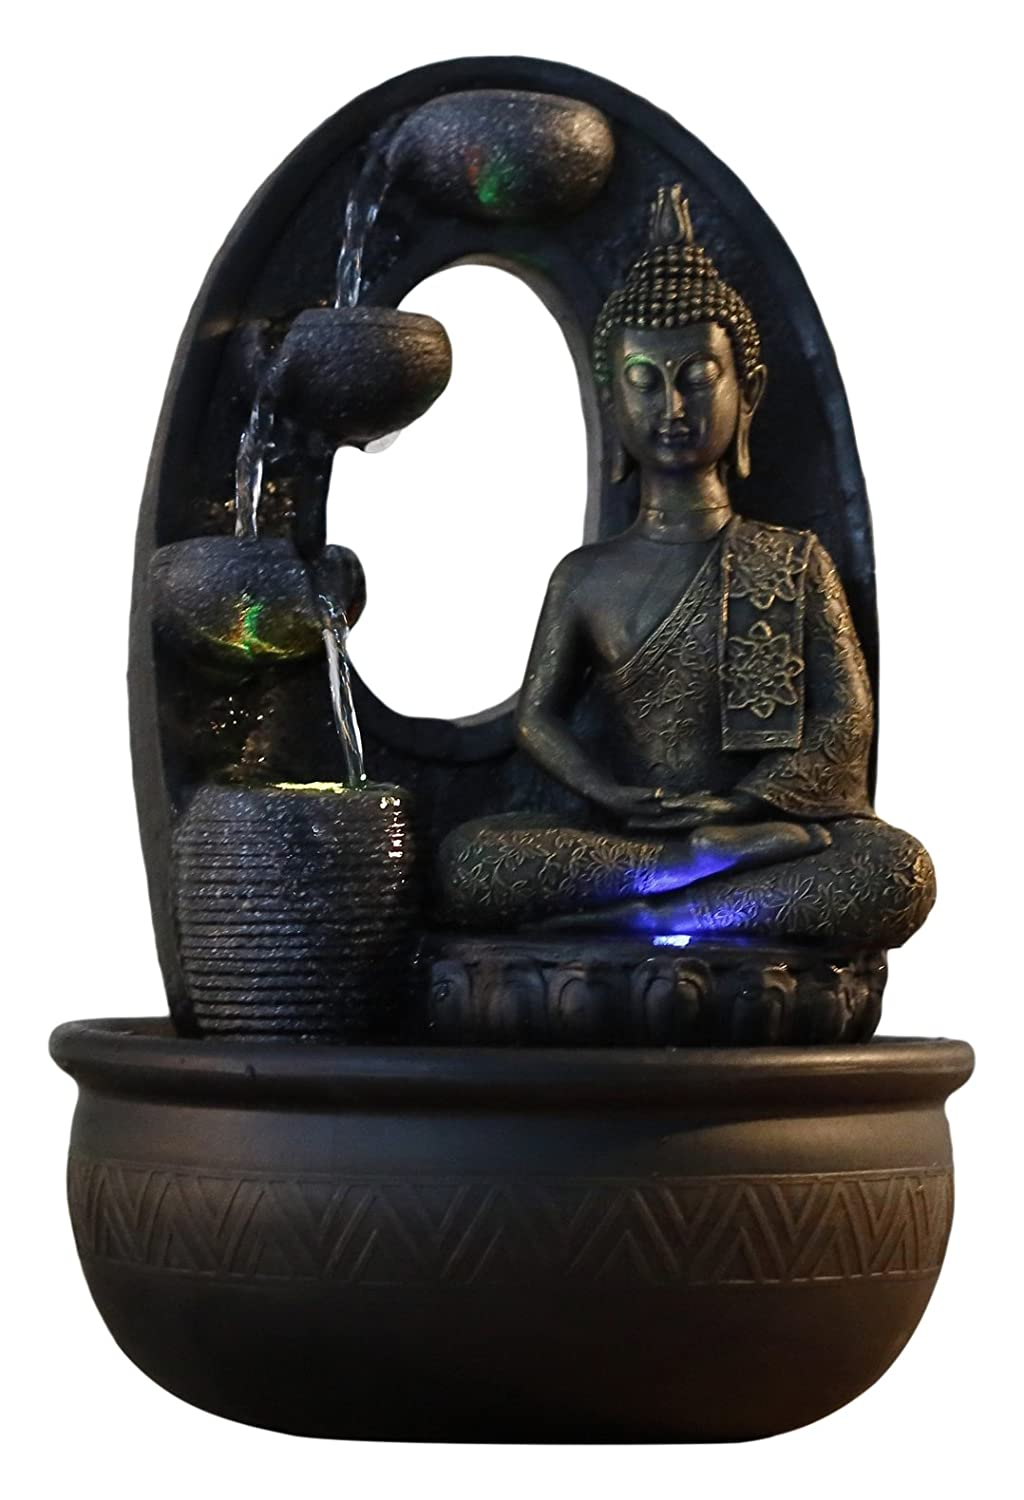 Zen Light, Harmonie - Fontana in poliresina, 26 x 16 x 40 cm, Colore: Nero Zen' Light